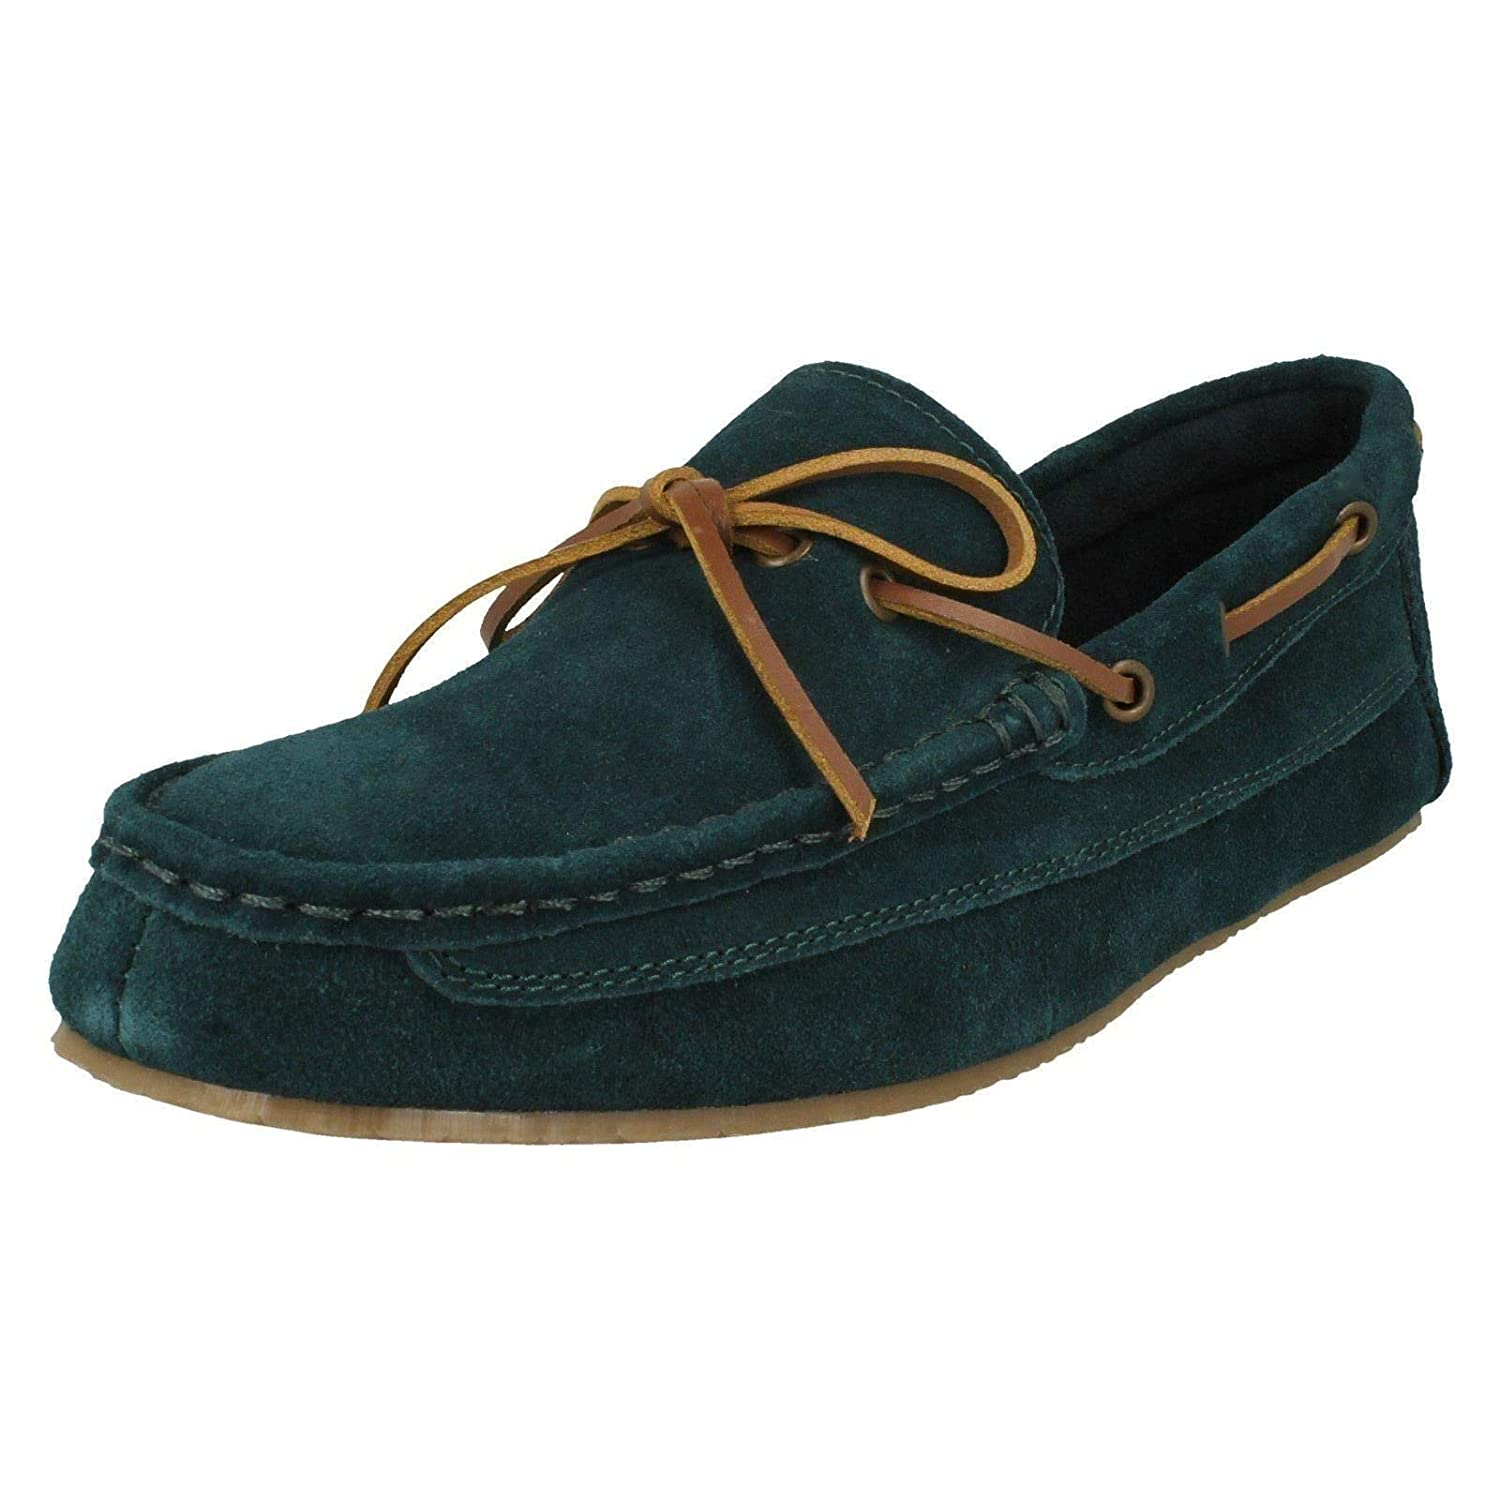 Amazon.com | CLARKS Mens Crackling Glow Teal Suede Leather Fur Boat Slippers G Fit Size | Slippers